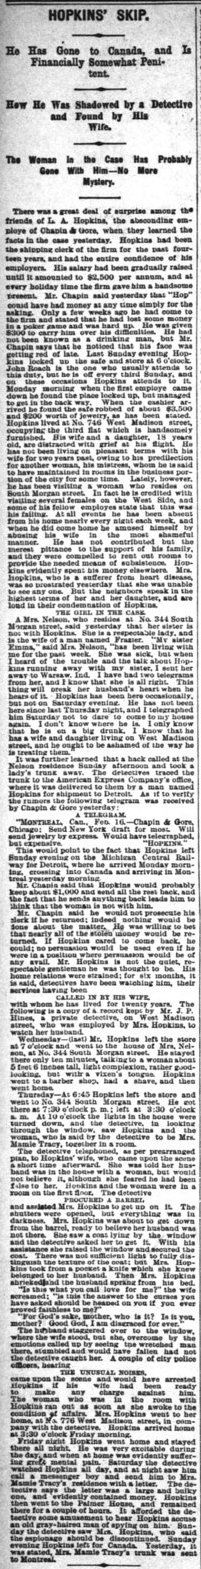 hopkins-skip-chi-inter-ocean-2-17-1886-pg-8-3